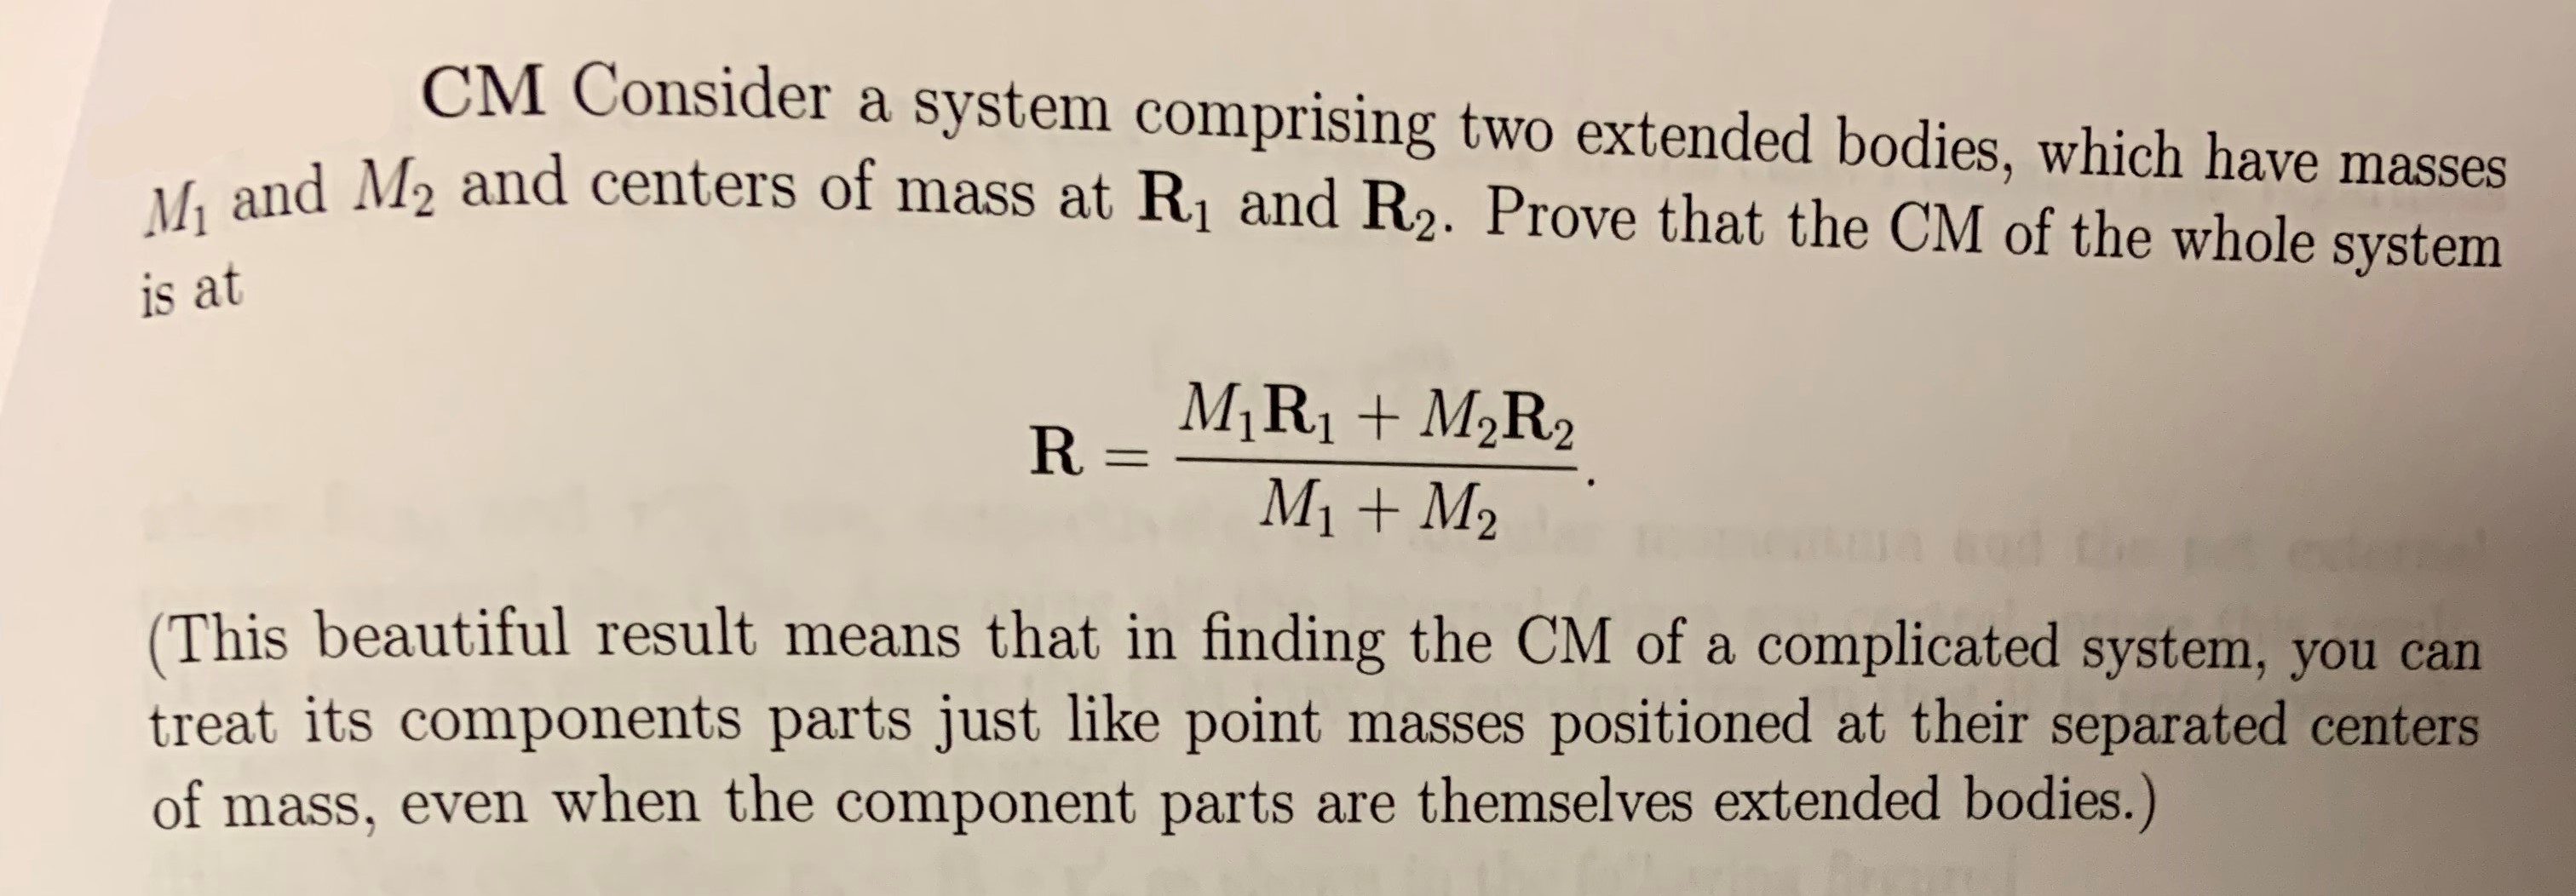 CM Consider a system comprising two extended bodies, which have masses M1 and M2 and centers of mass at R1 and R2. Prove that the CM of the whole system is at R-MIRI+M2R2 M1M2 (This beautiful result means that in finding the CM of a complicated system, you can treat its components parts just like point masses positioned at their separated centers of mass, even when the component parts are themselves extended bodies.)